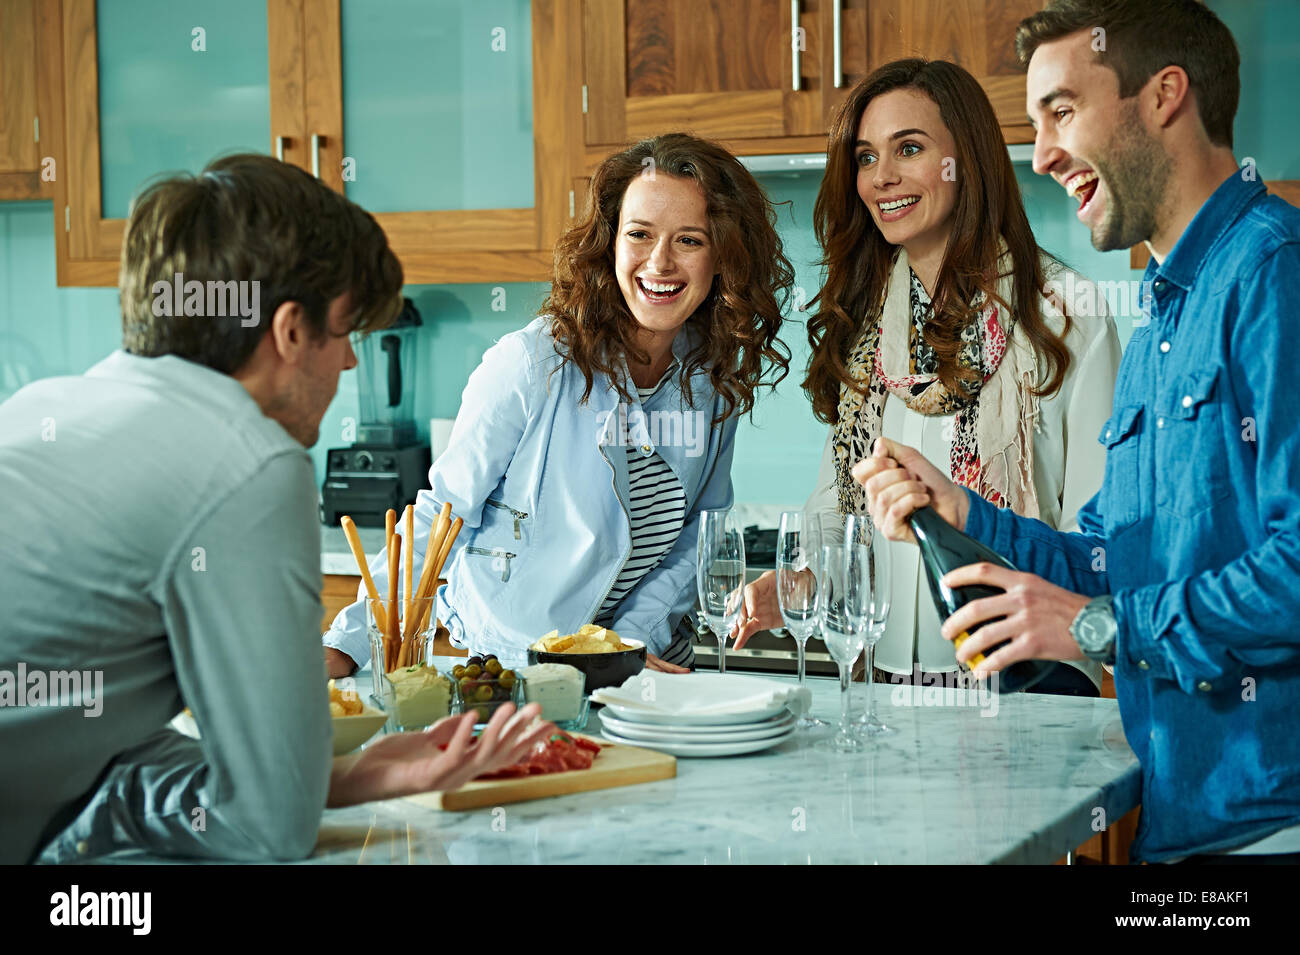 Friends celebrating at home - Stock Image